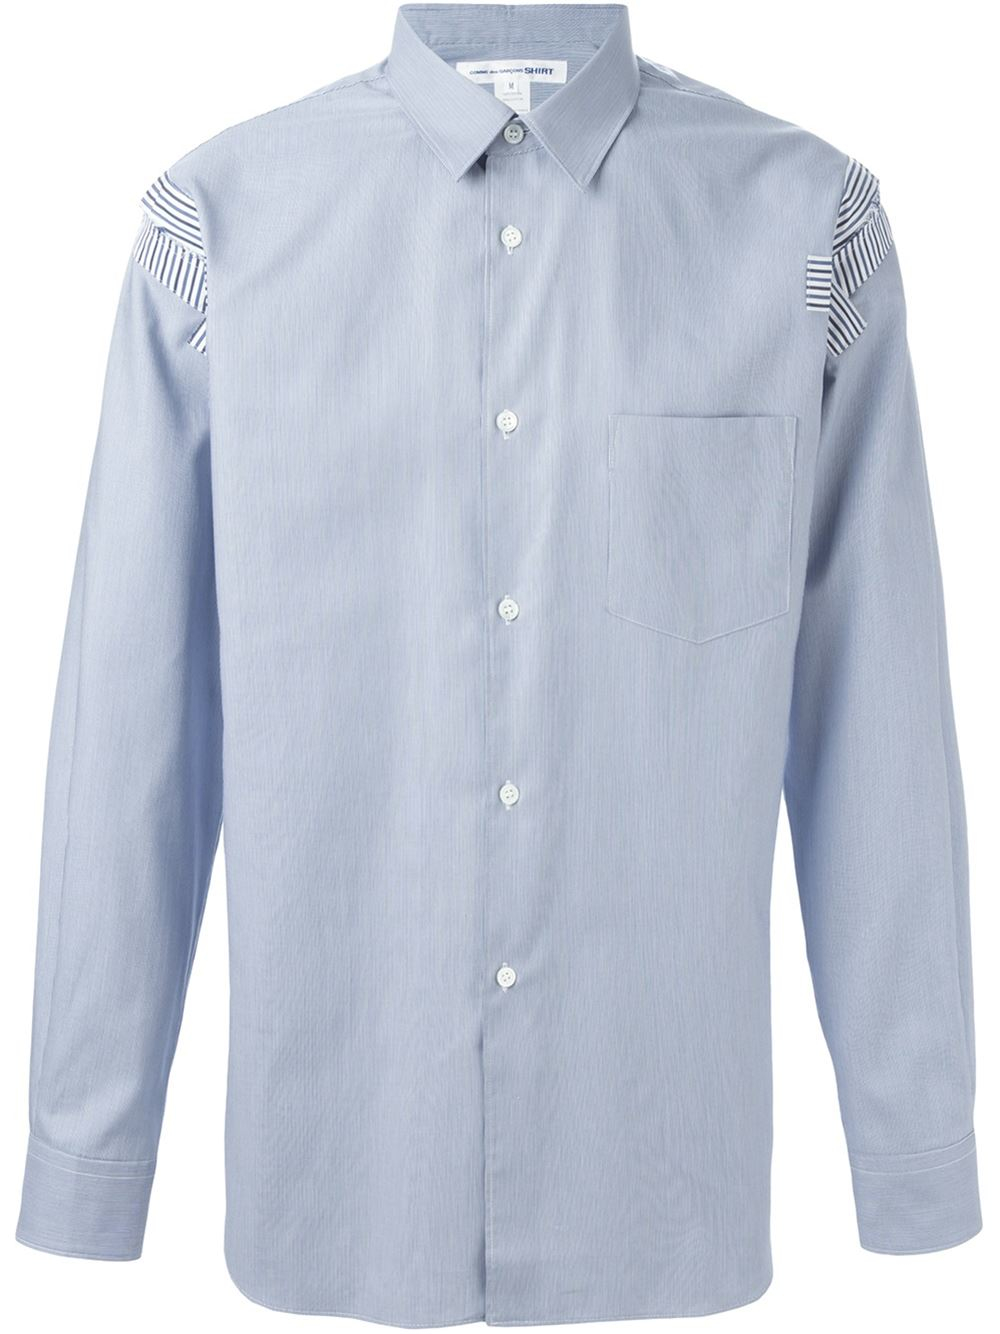 comme des gar ons shoulder patch shirt in blue for men lyst. Black Bedroom Furniture Sets. Home Design Ideas